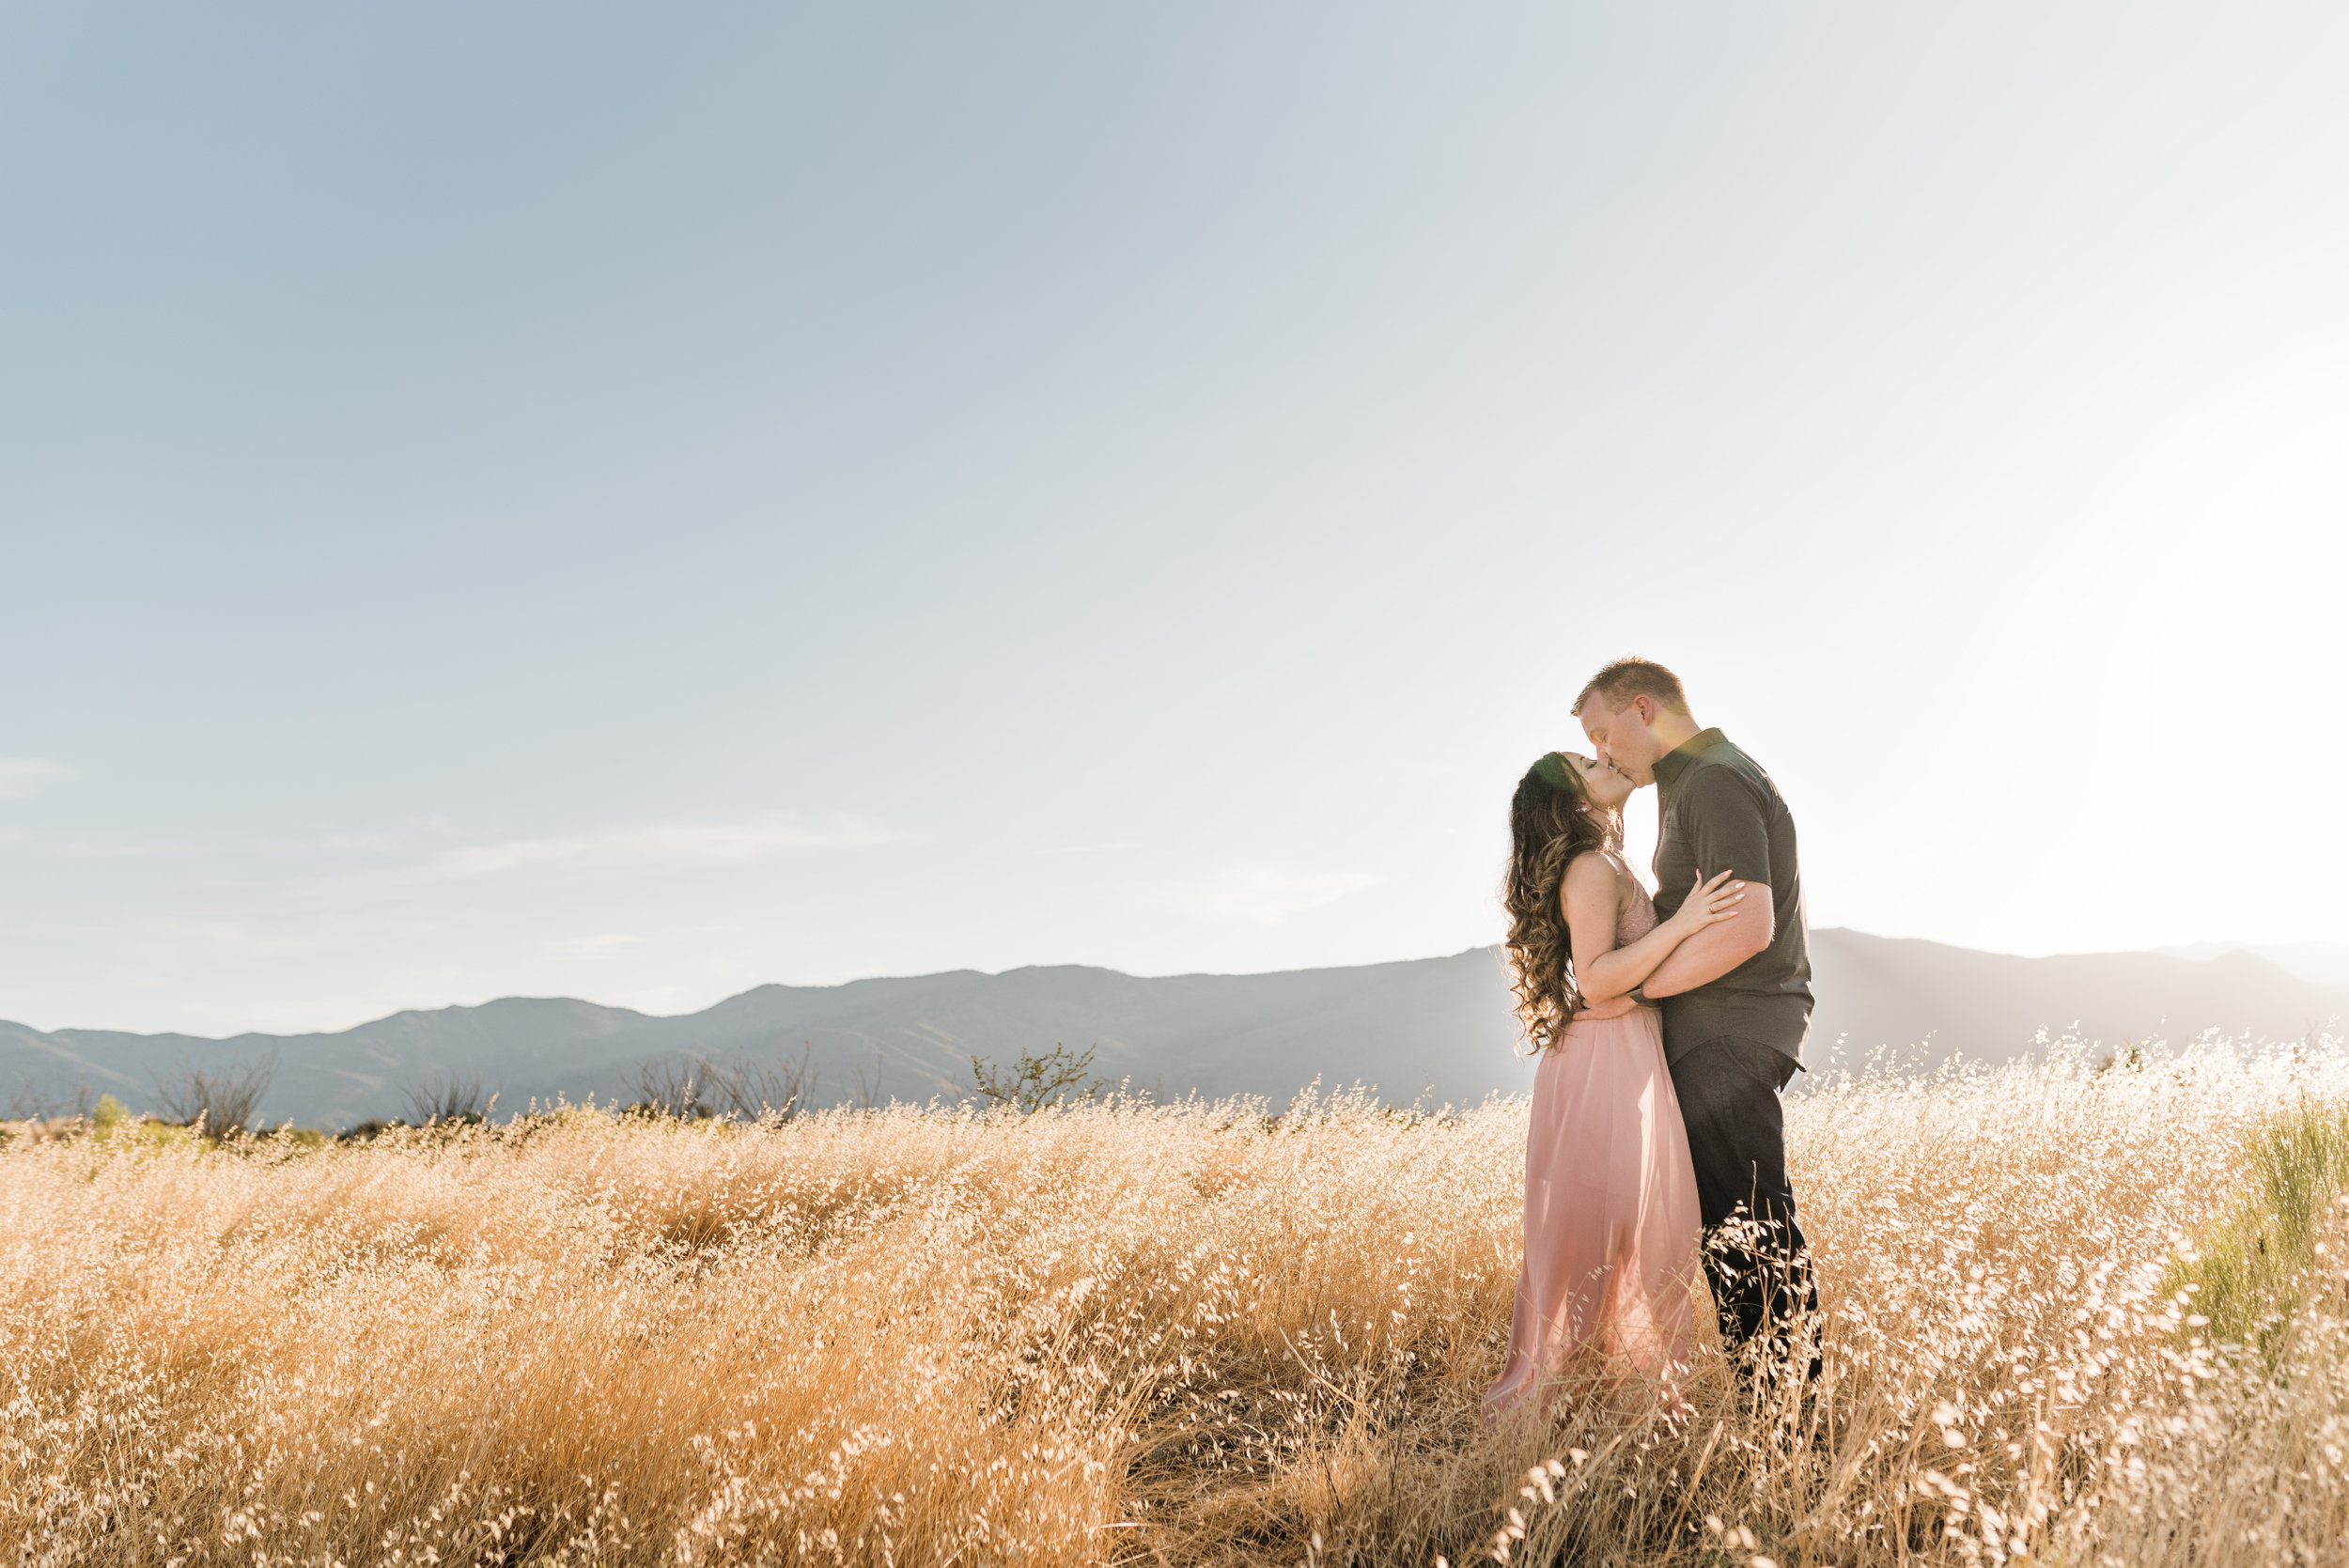 Couple kissing in grass field with sun burst between them